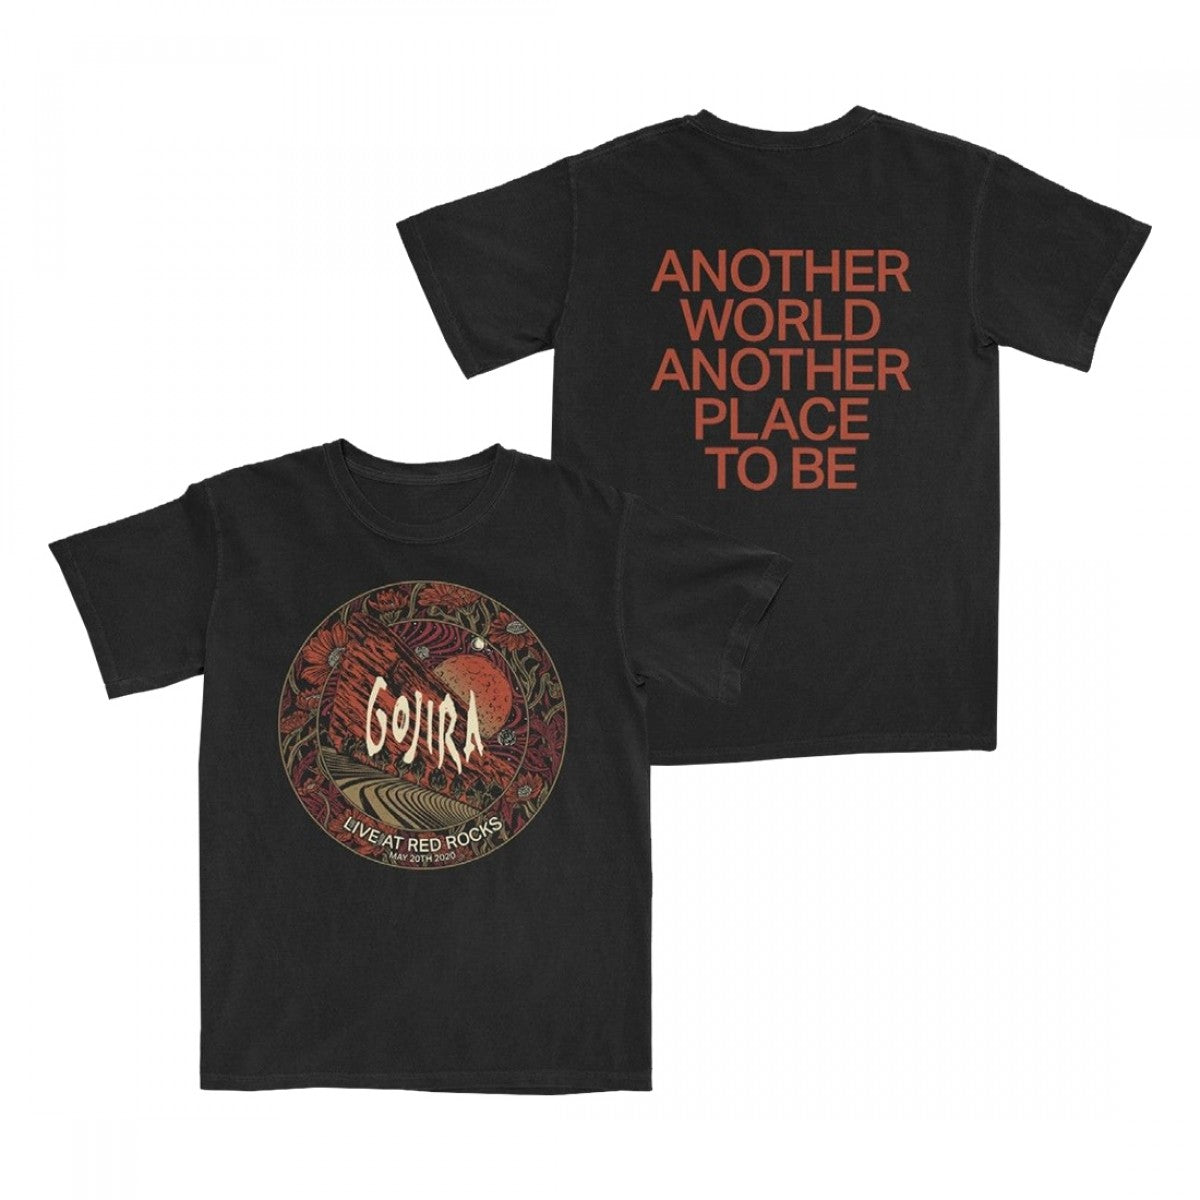 LIVE AT RED ROCKS T-SHIRT